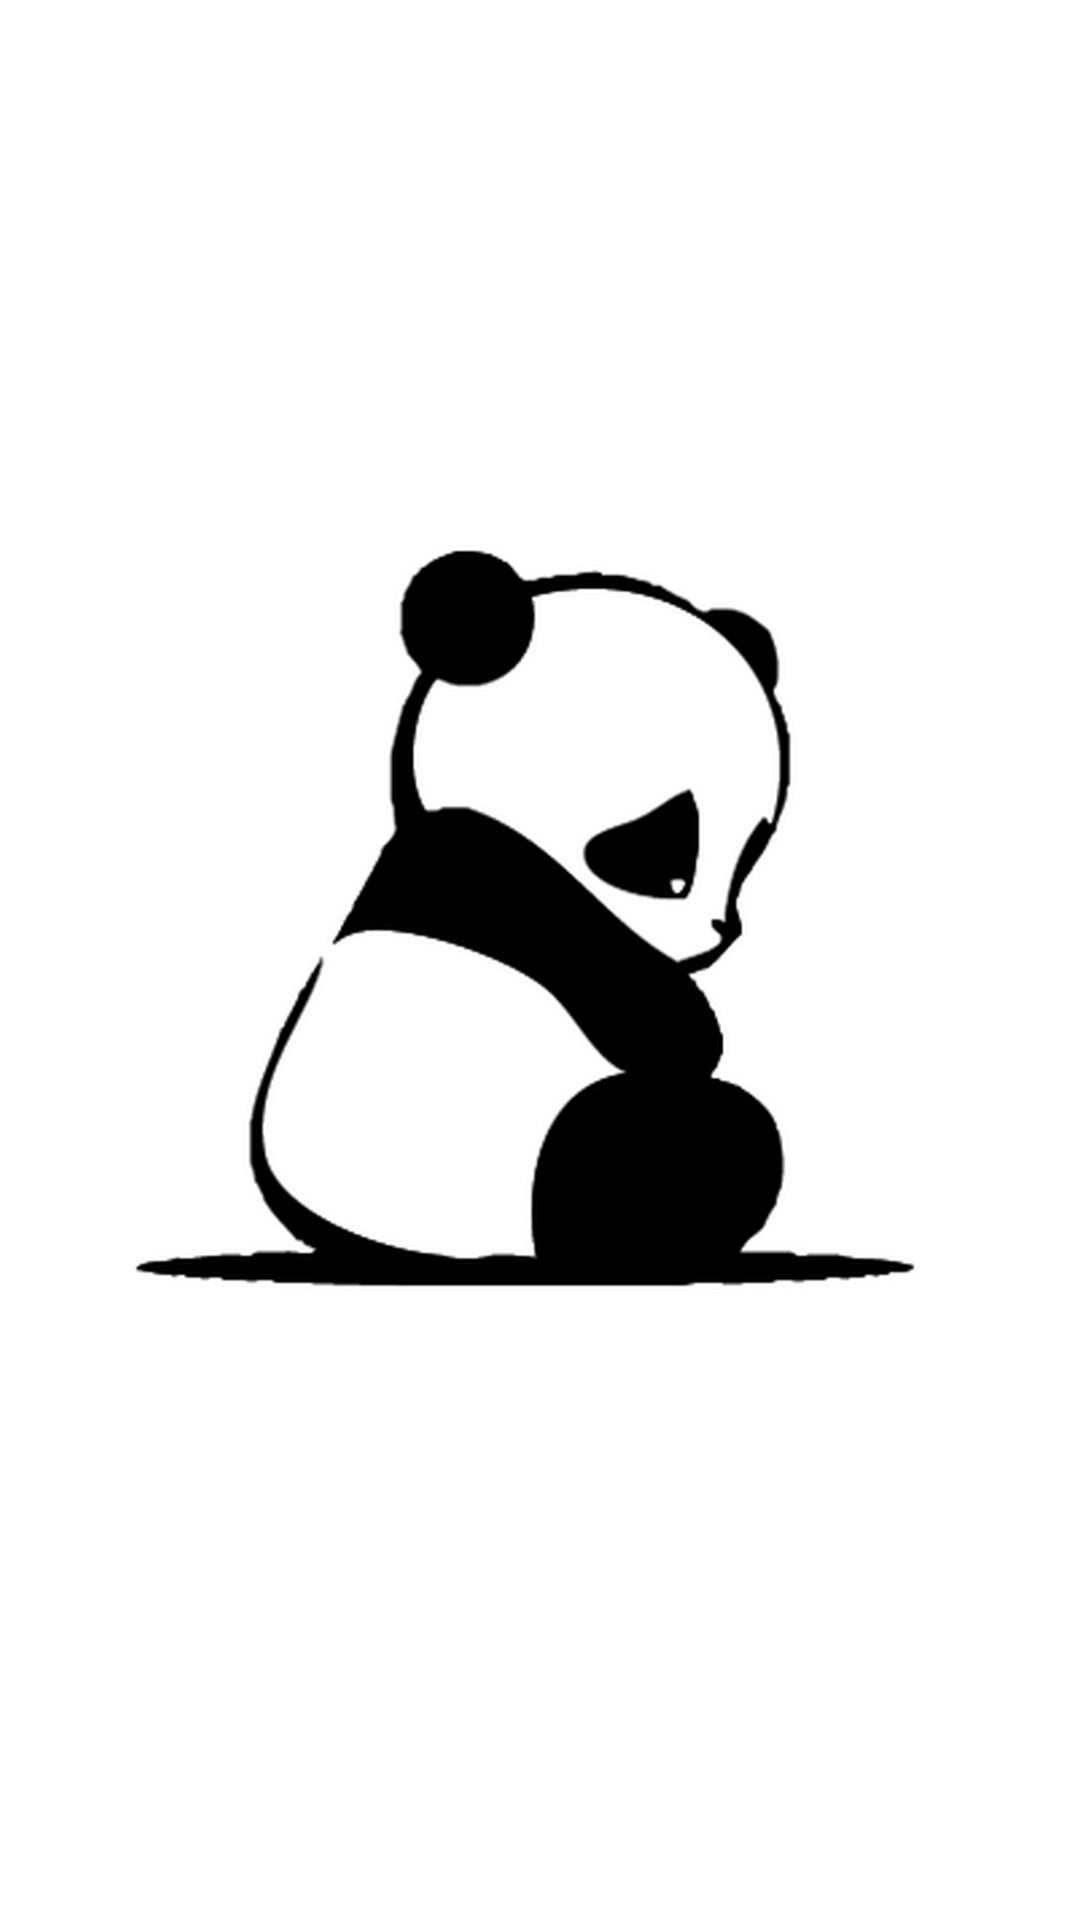 Cute Baby Panda Wallpaper For Mobile Best Hd Wallpapers Cute Panda Wallpaper Panda Drawing Panda Wallpapers